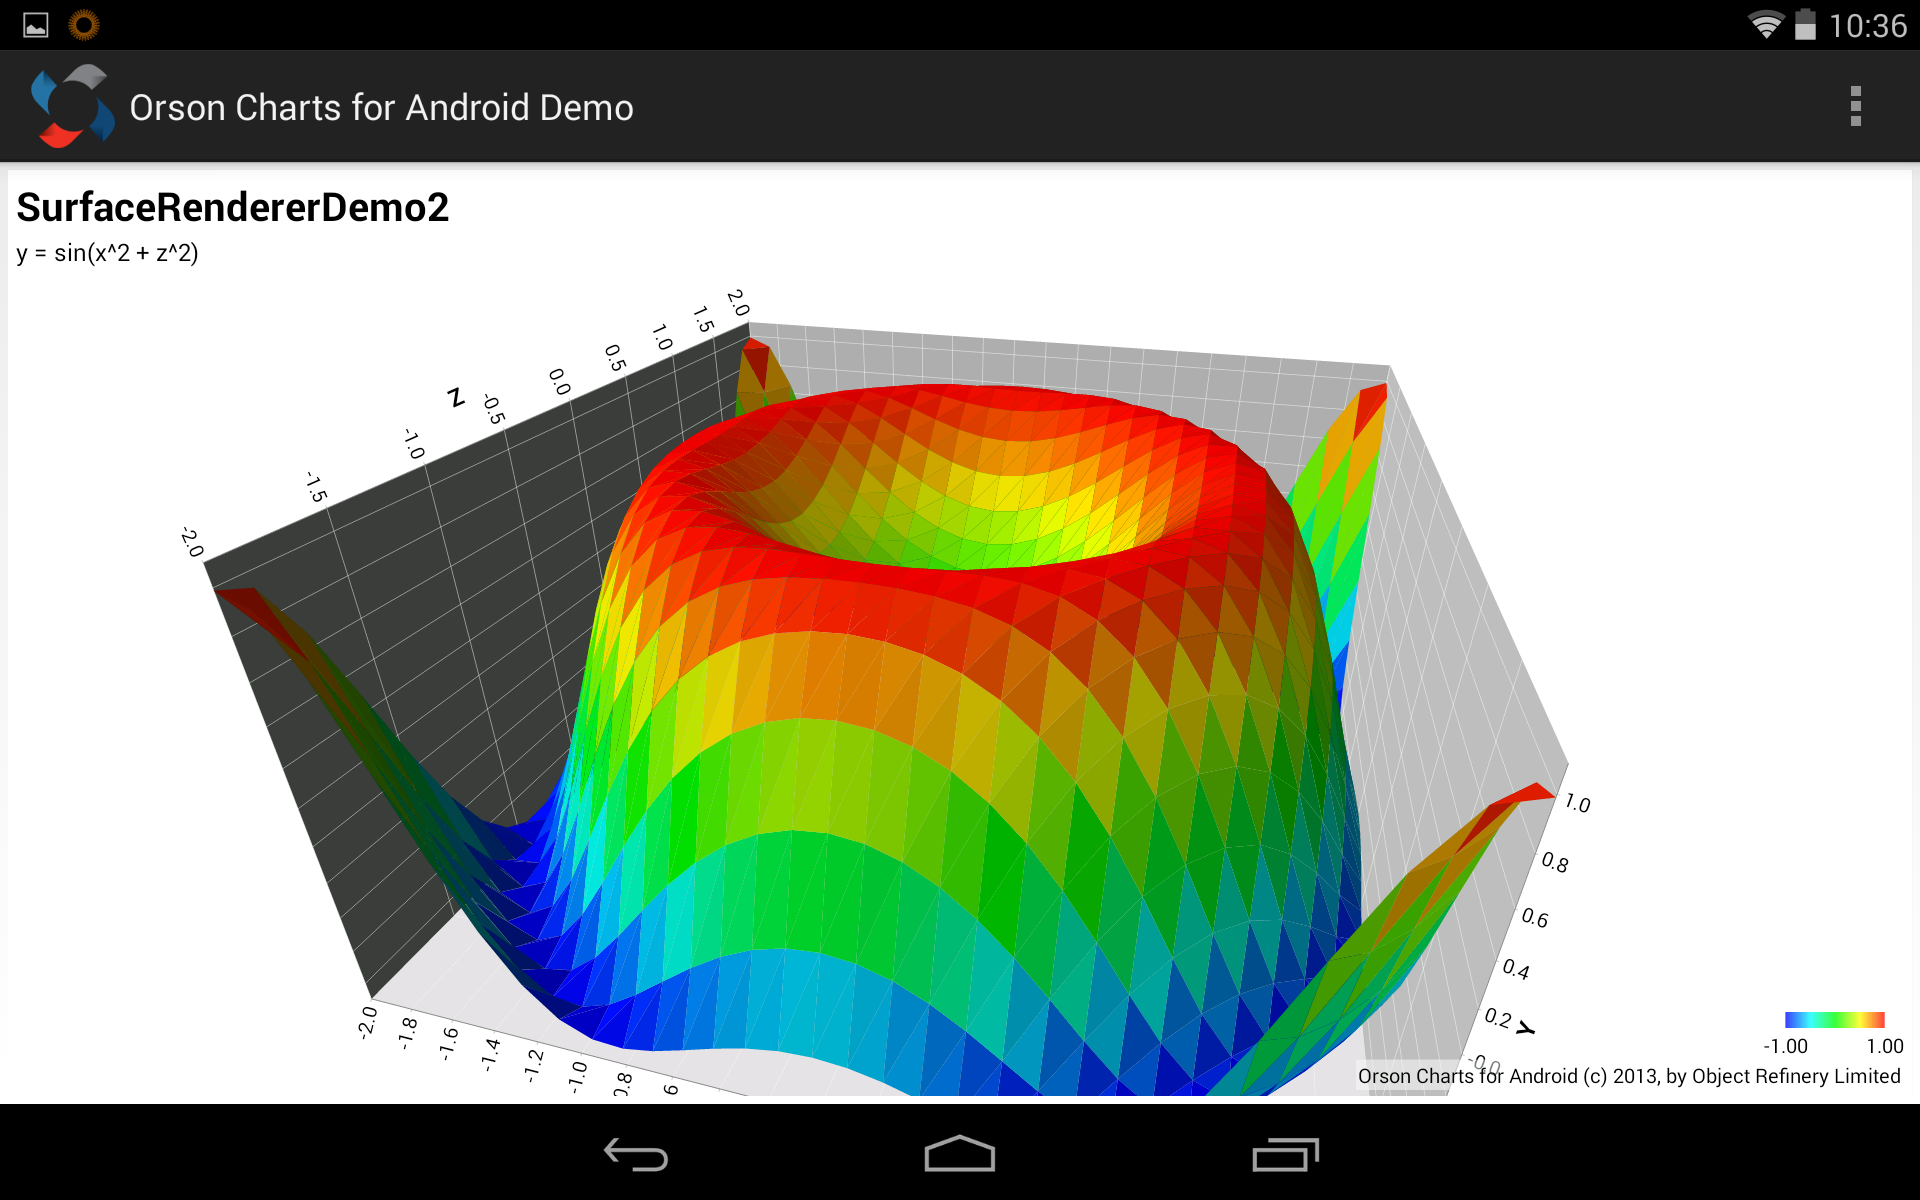 Orson Charts for Android